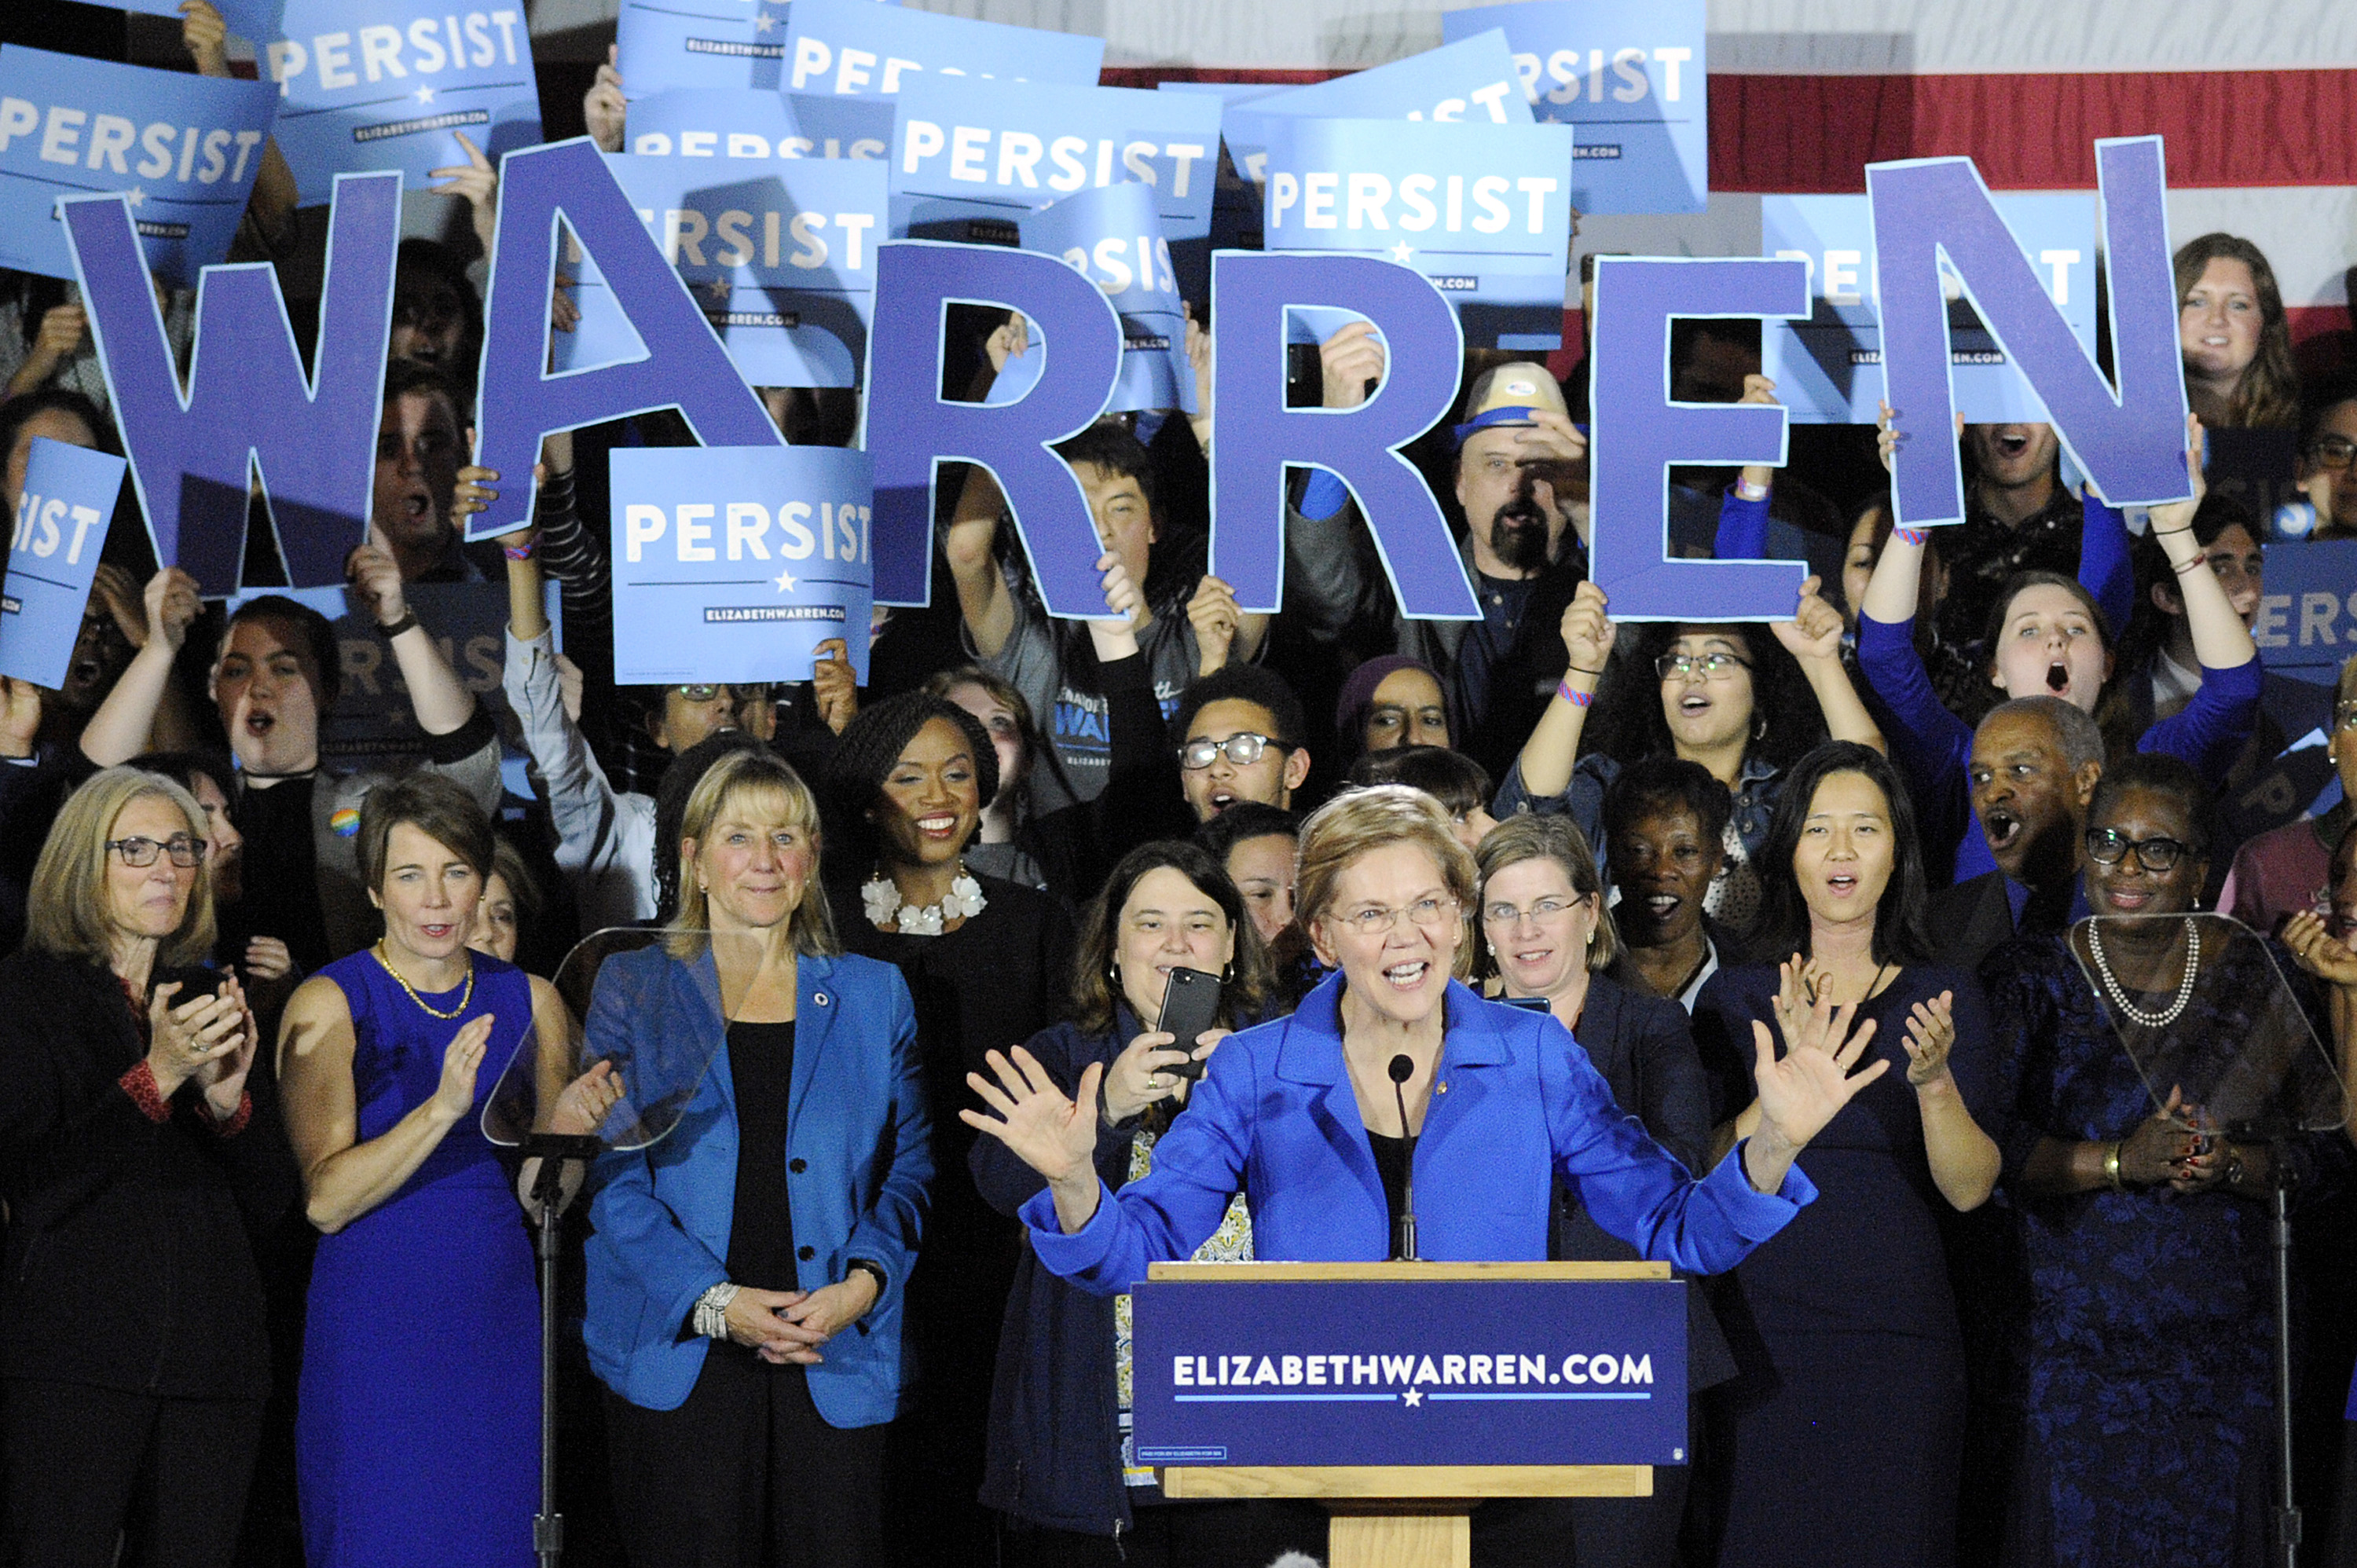 US Senator Elizabeth Warren (D-MA) addresses the audience during the Election Day Massachusetts Democratic Coordinated Campaign Election Night Celebration at the Fairmont Copley Hotel in Boston on November 6, 2018. (Photo by Joseph PREZIOSO / AFP) (Photo credit should read JOSEPH PREZIOSO/AFP via Getty Images)